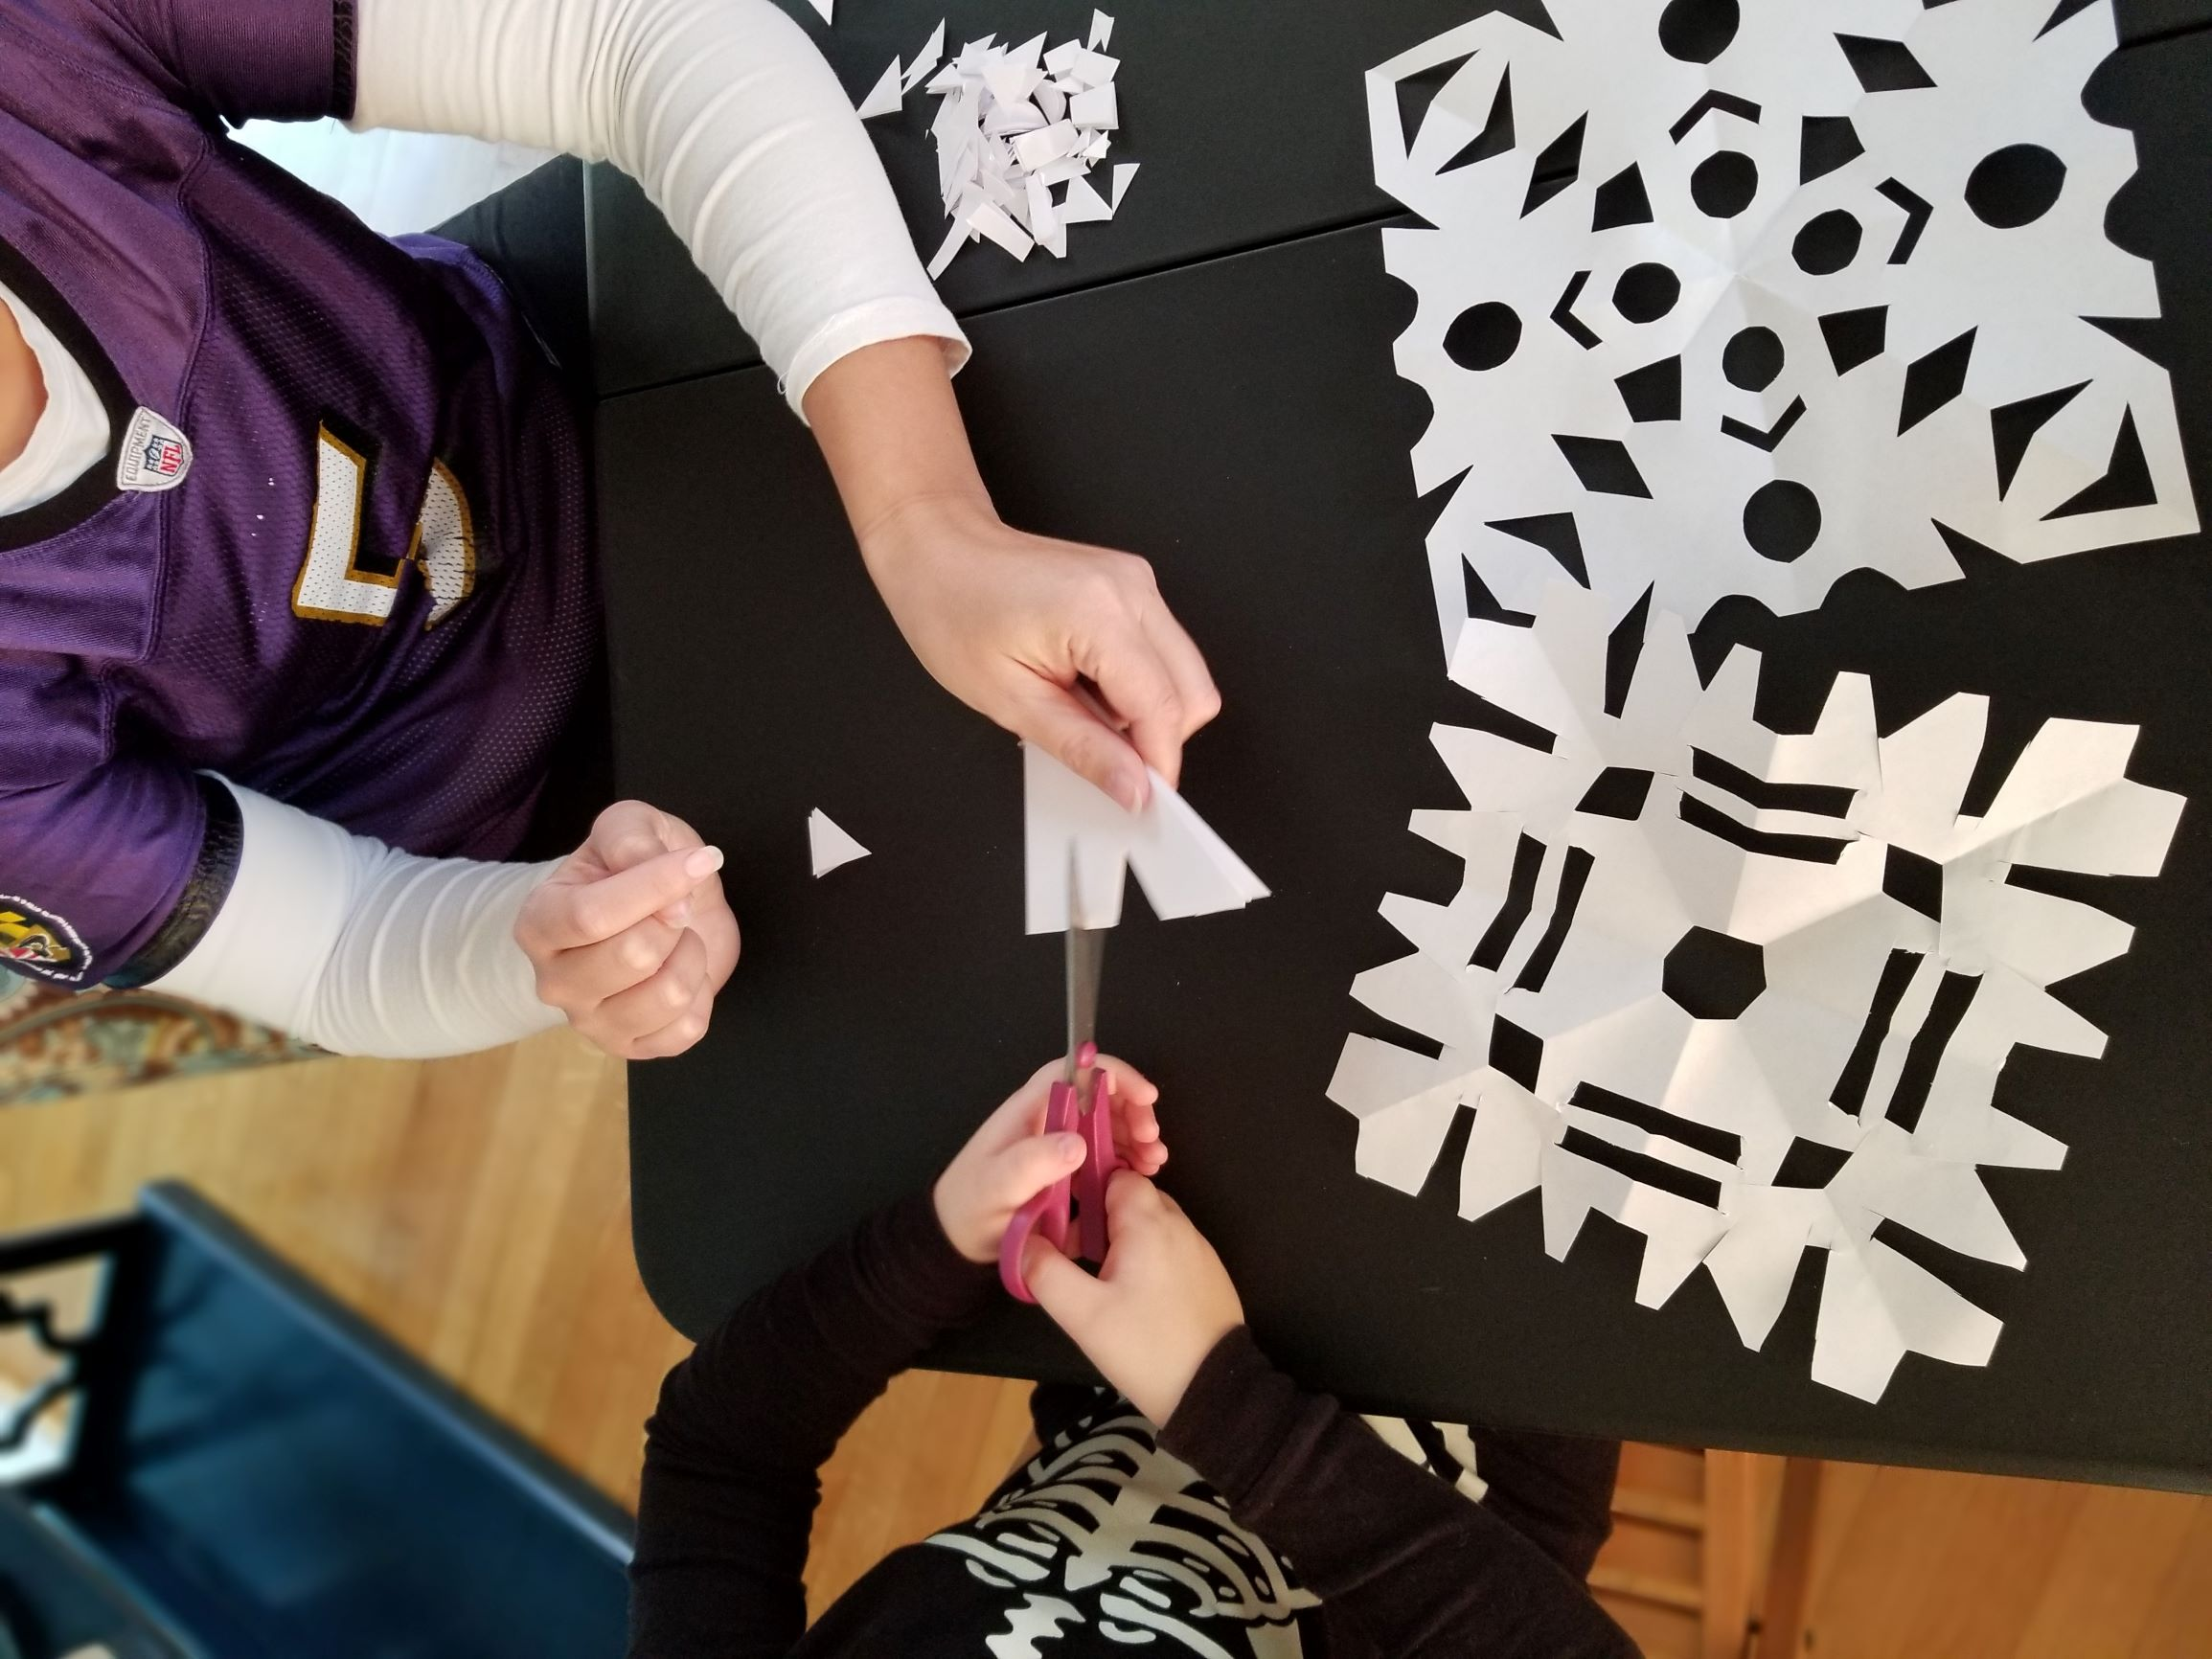 Snowflake Craft Just in Time for the Holidays